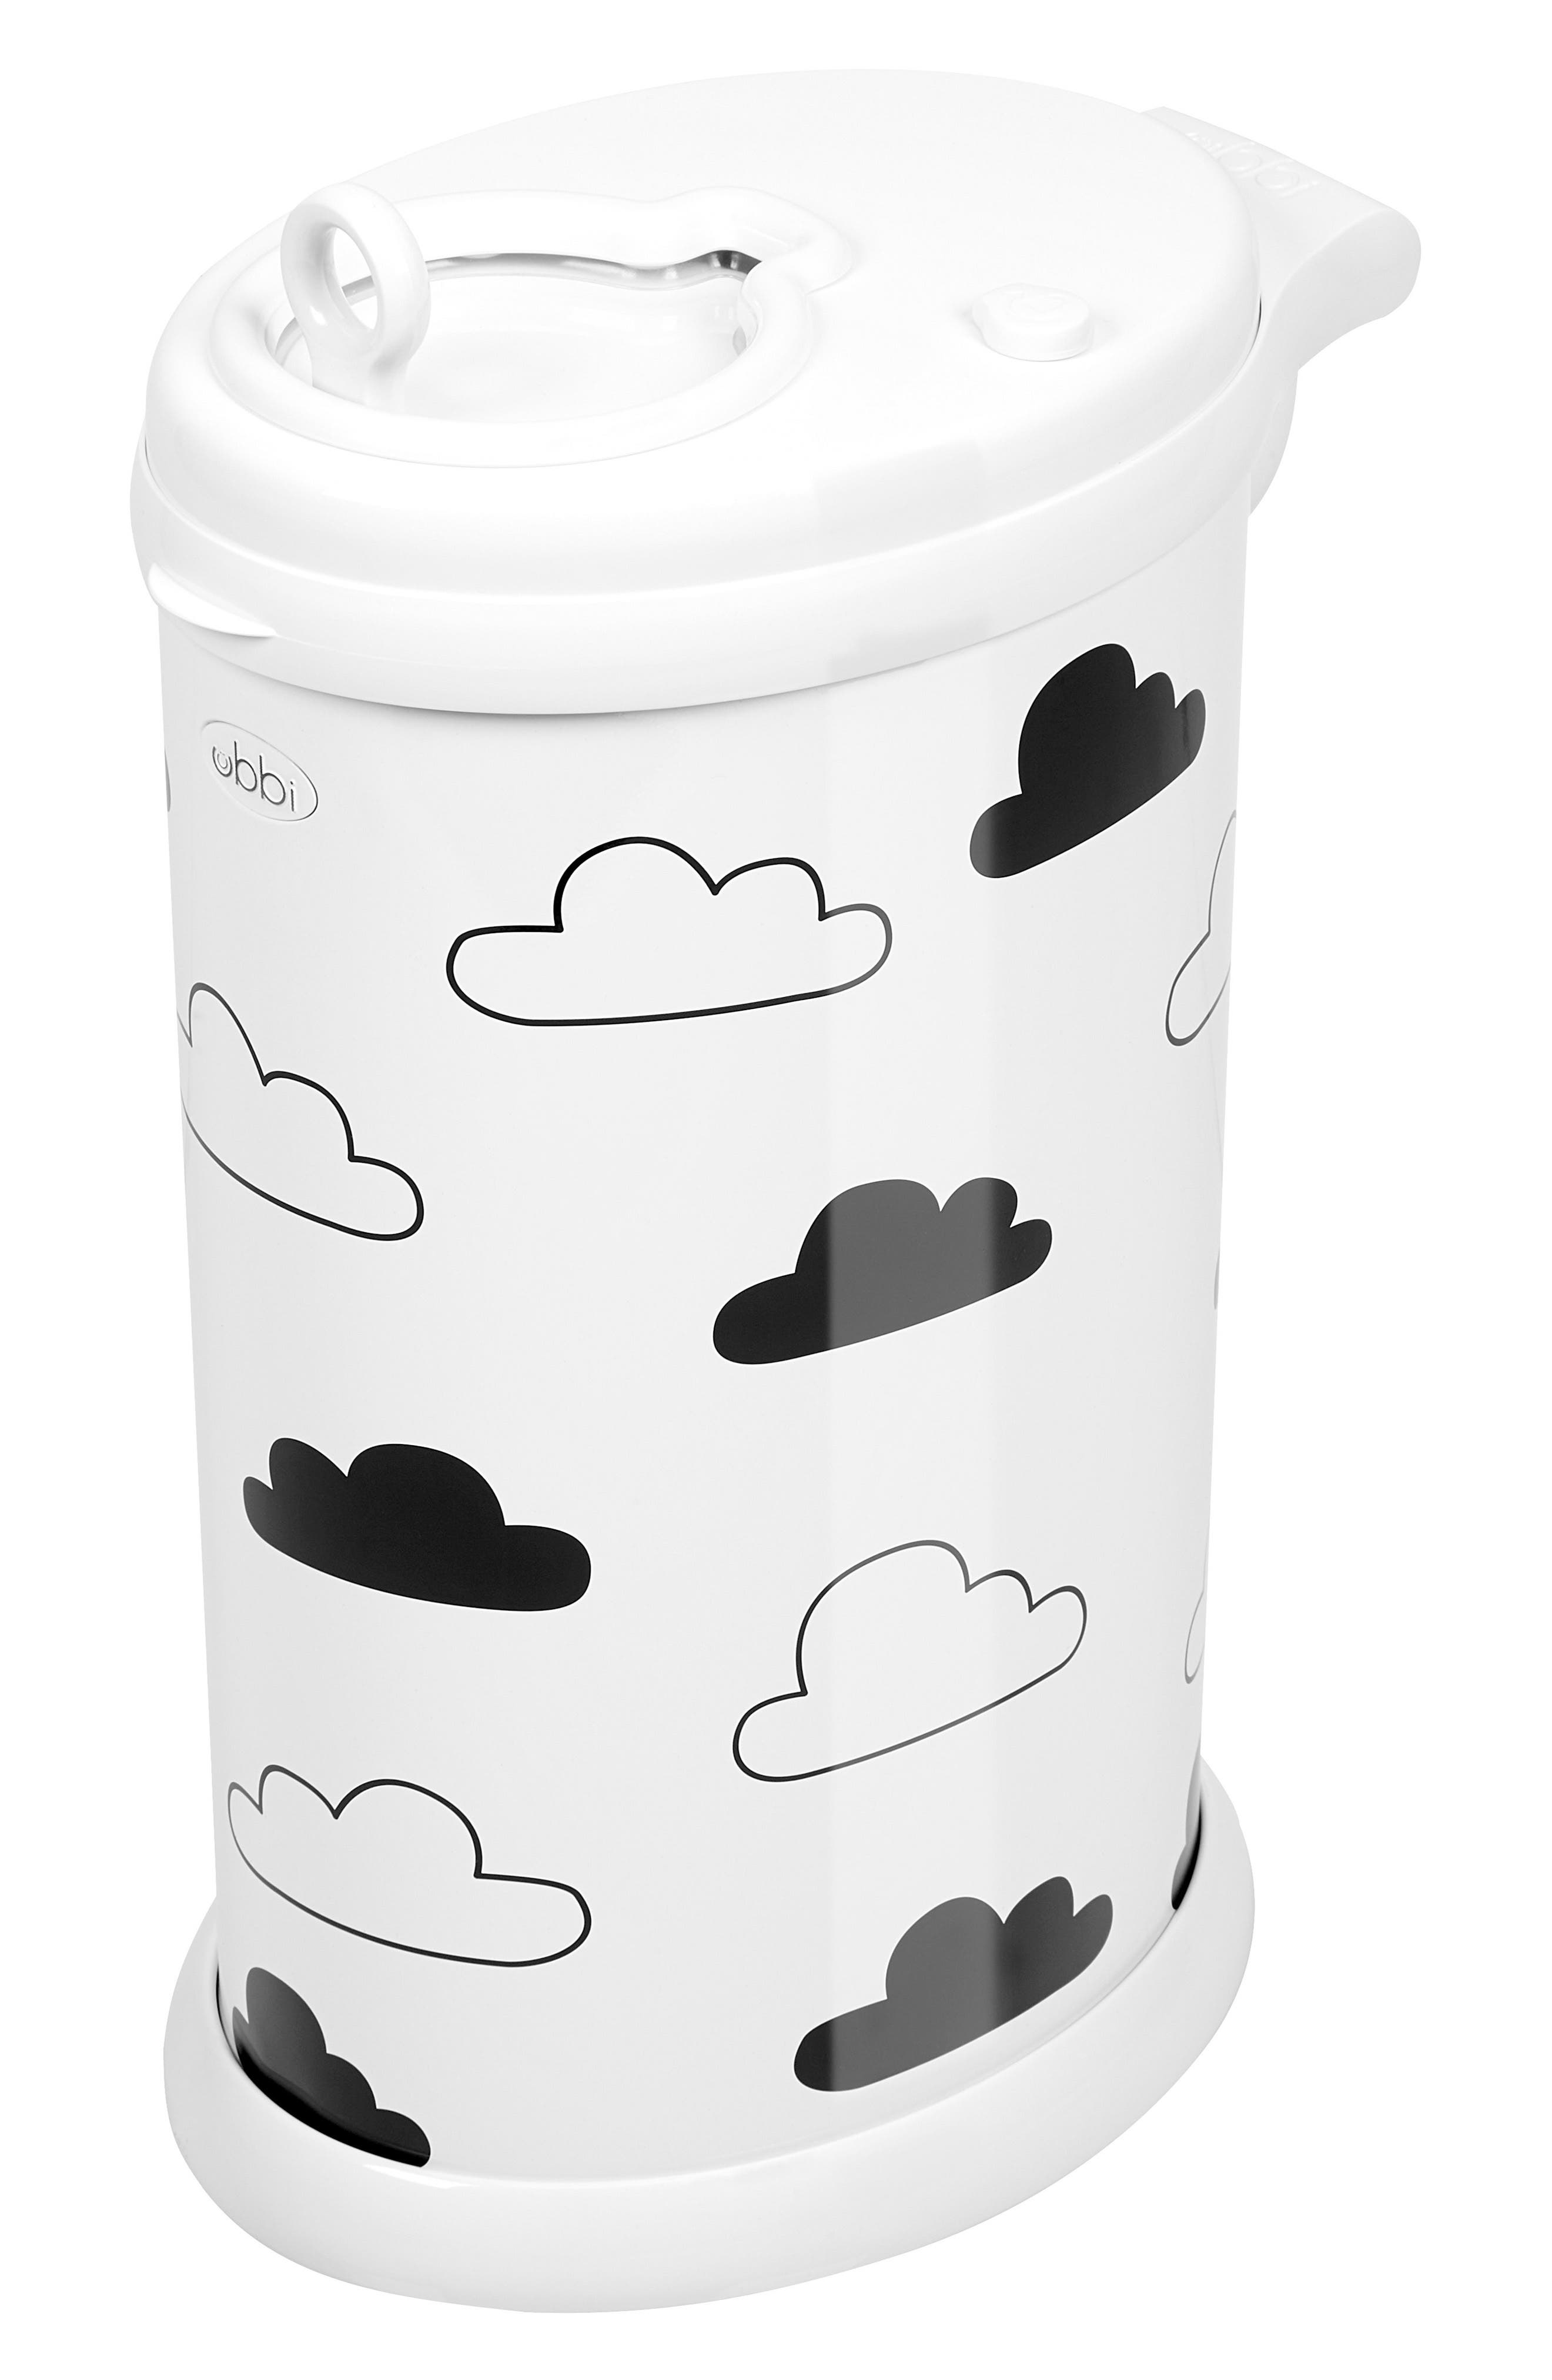 Alternate Image 1 Selected - Ubbi Diaper Pail